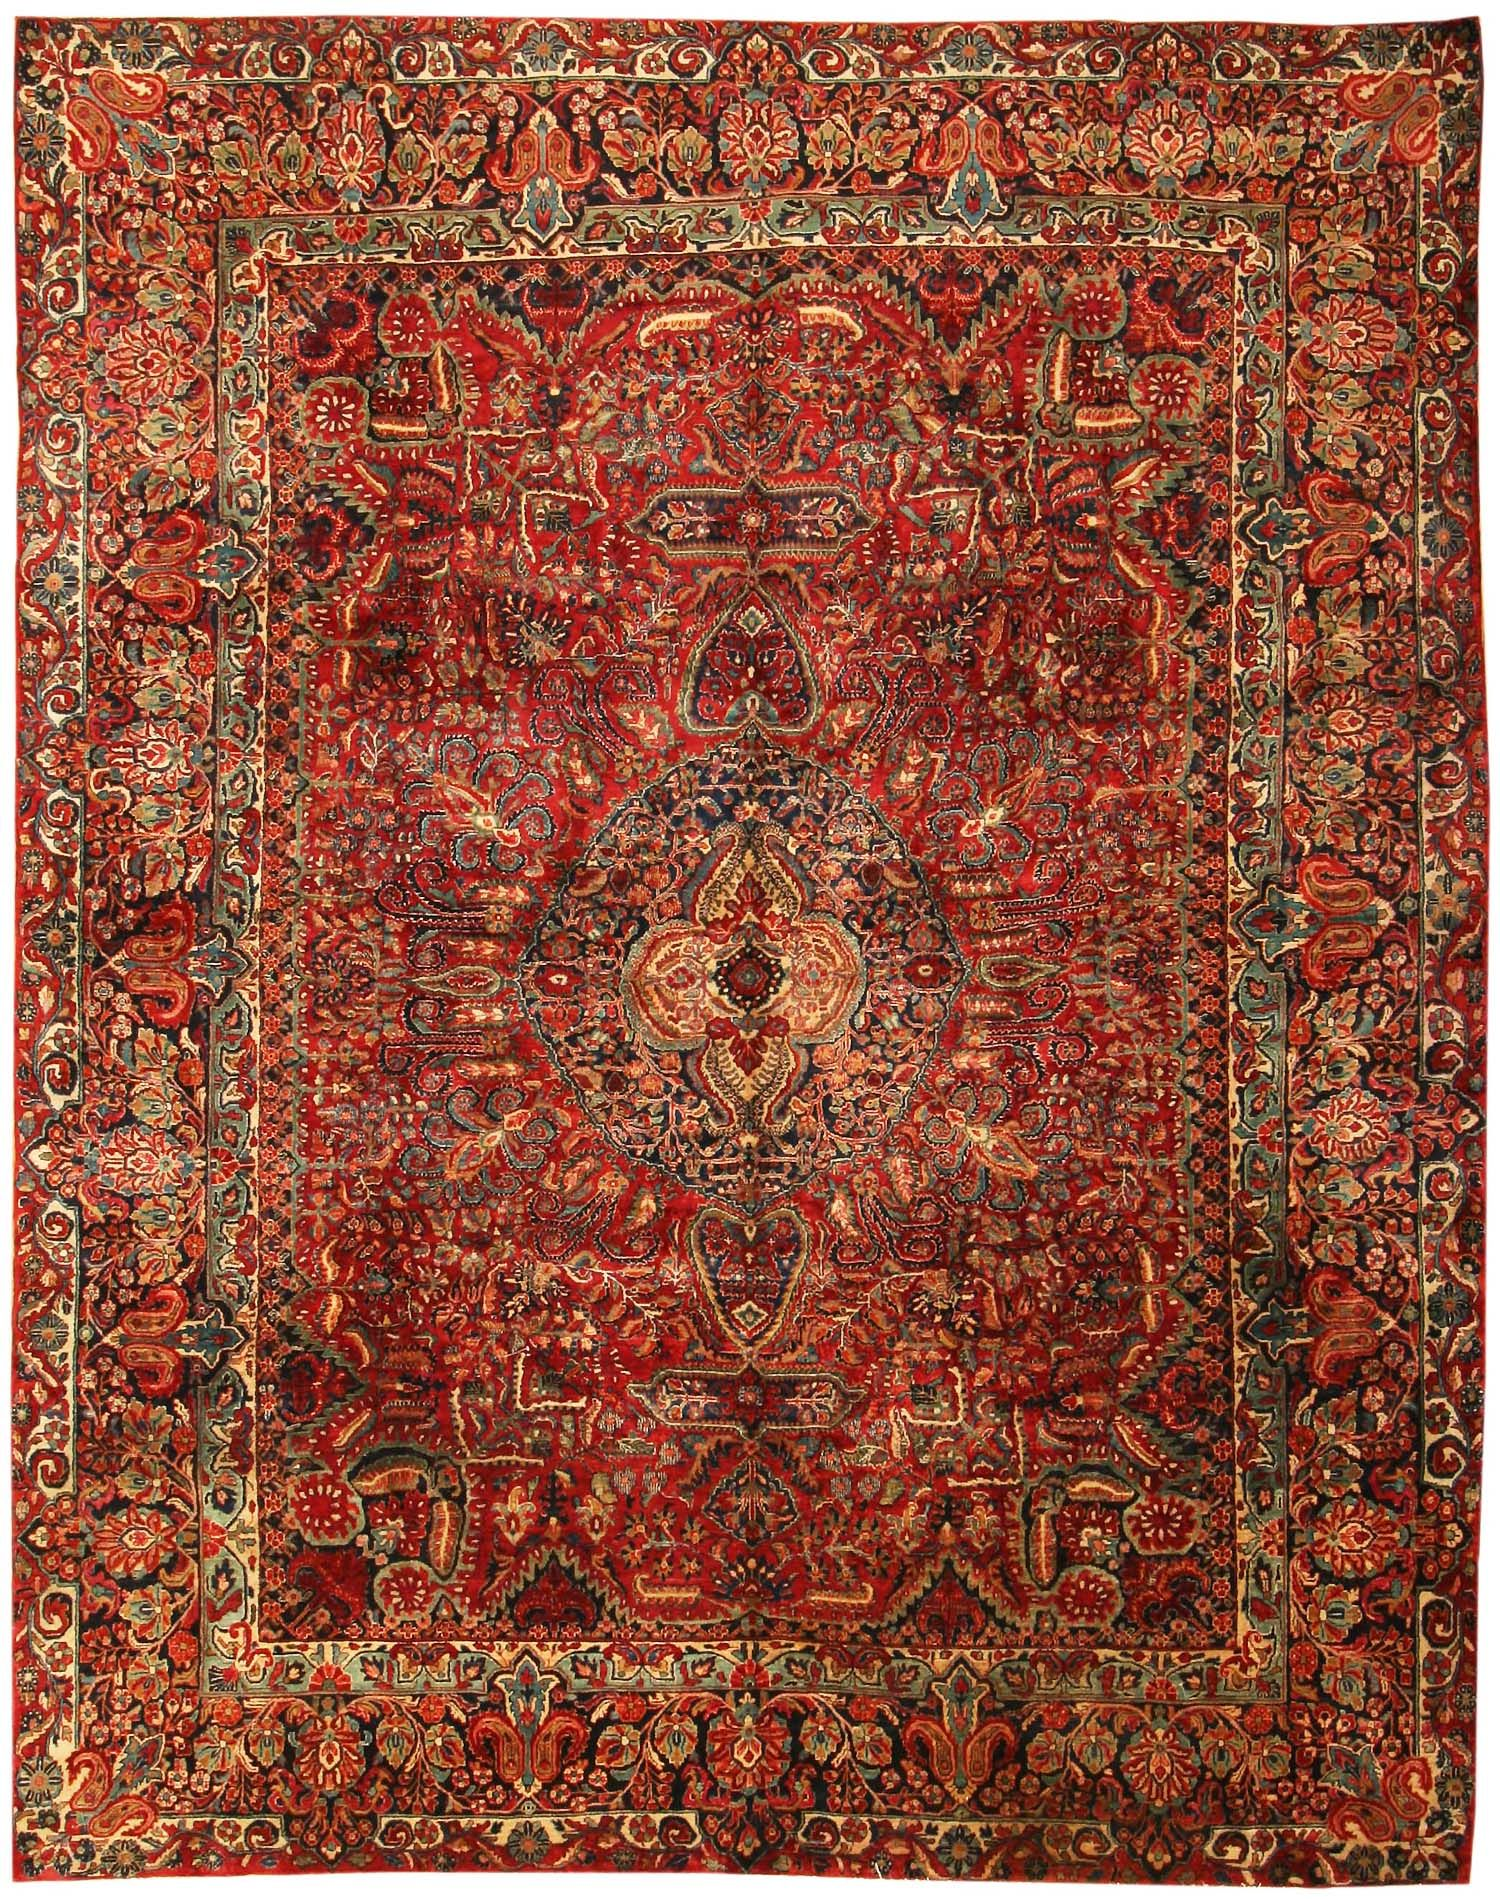 Discover Old Rugs And Find Vintage Rugs Persian Rug Rugs On